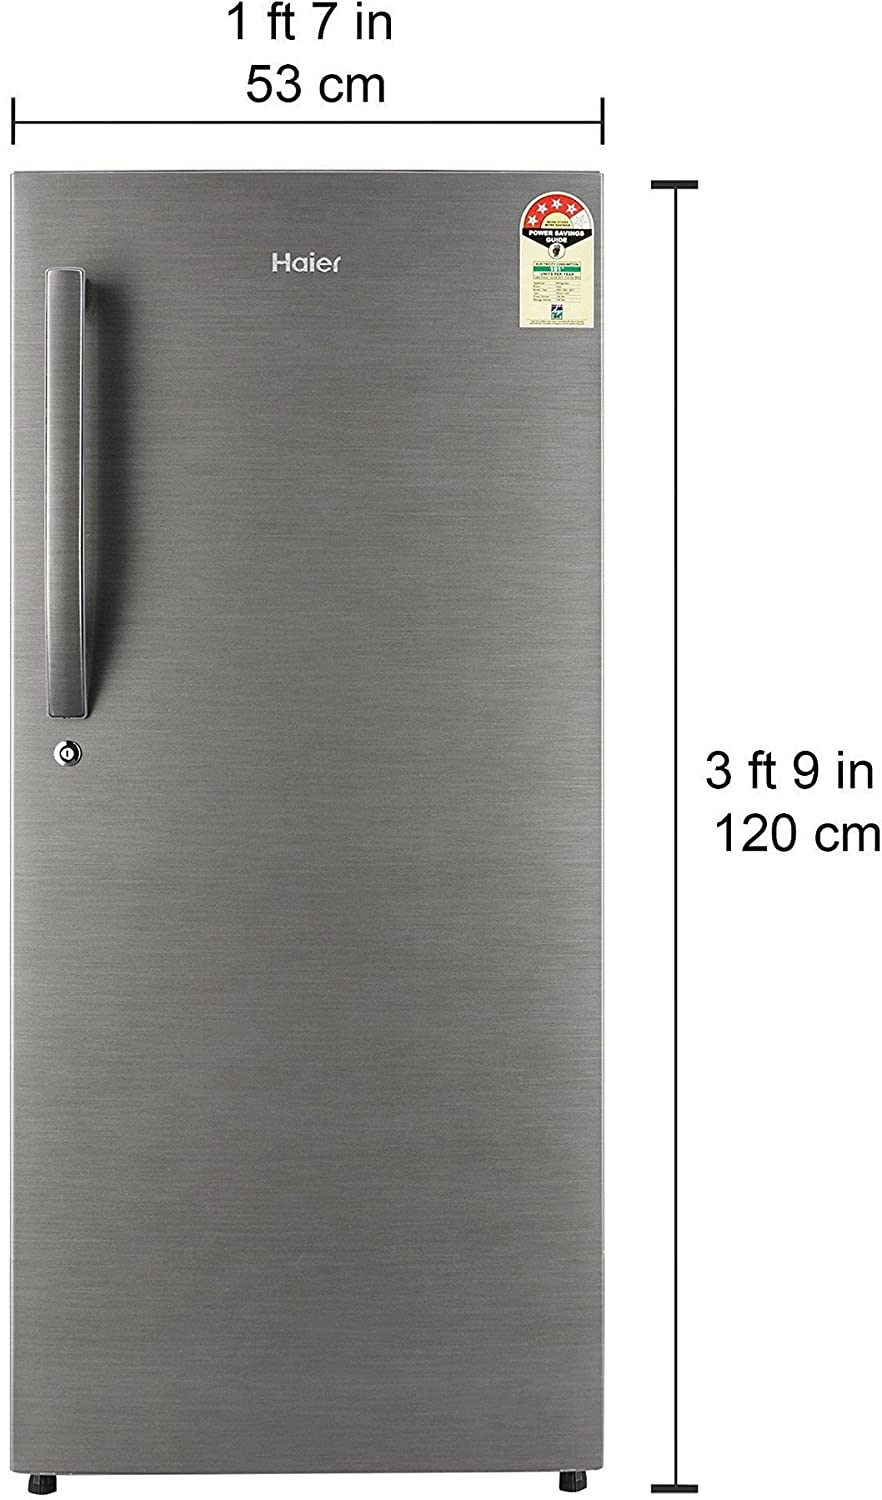 Haier 195l 4 star direct cool single door refrigerator hed 20fds haier 195l 4 star direct cool single door refrigerator hed 20fds brushed silverdazzle steel amazon home kitchen fandeluxe Image collections